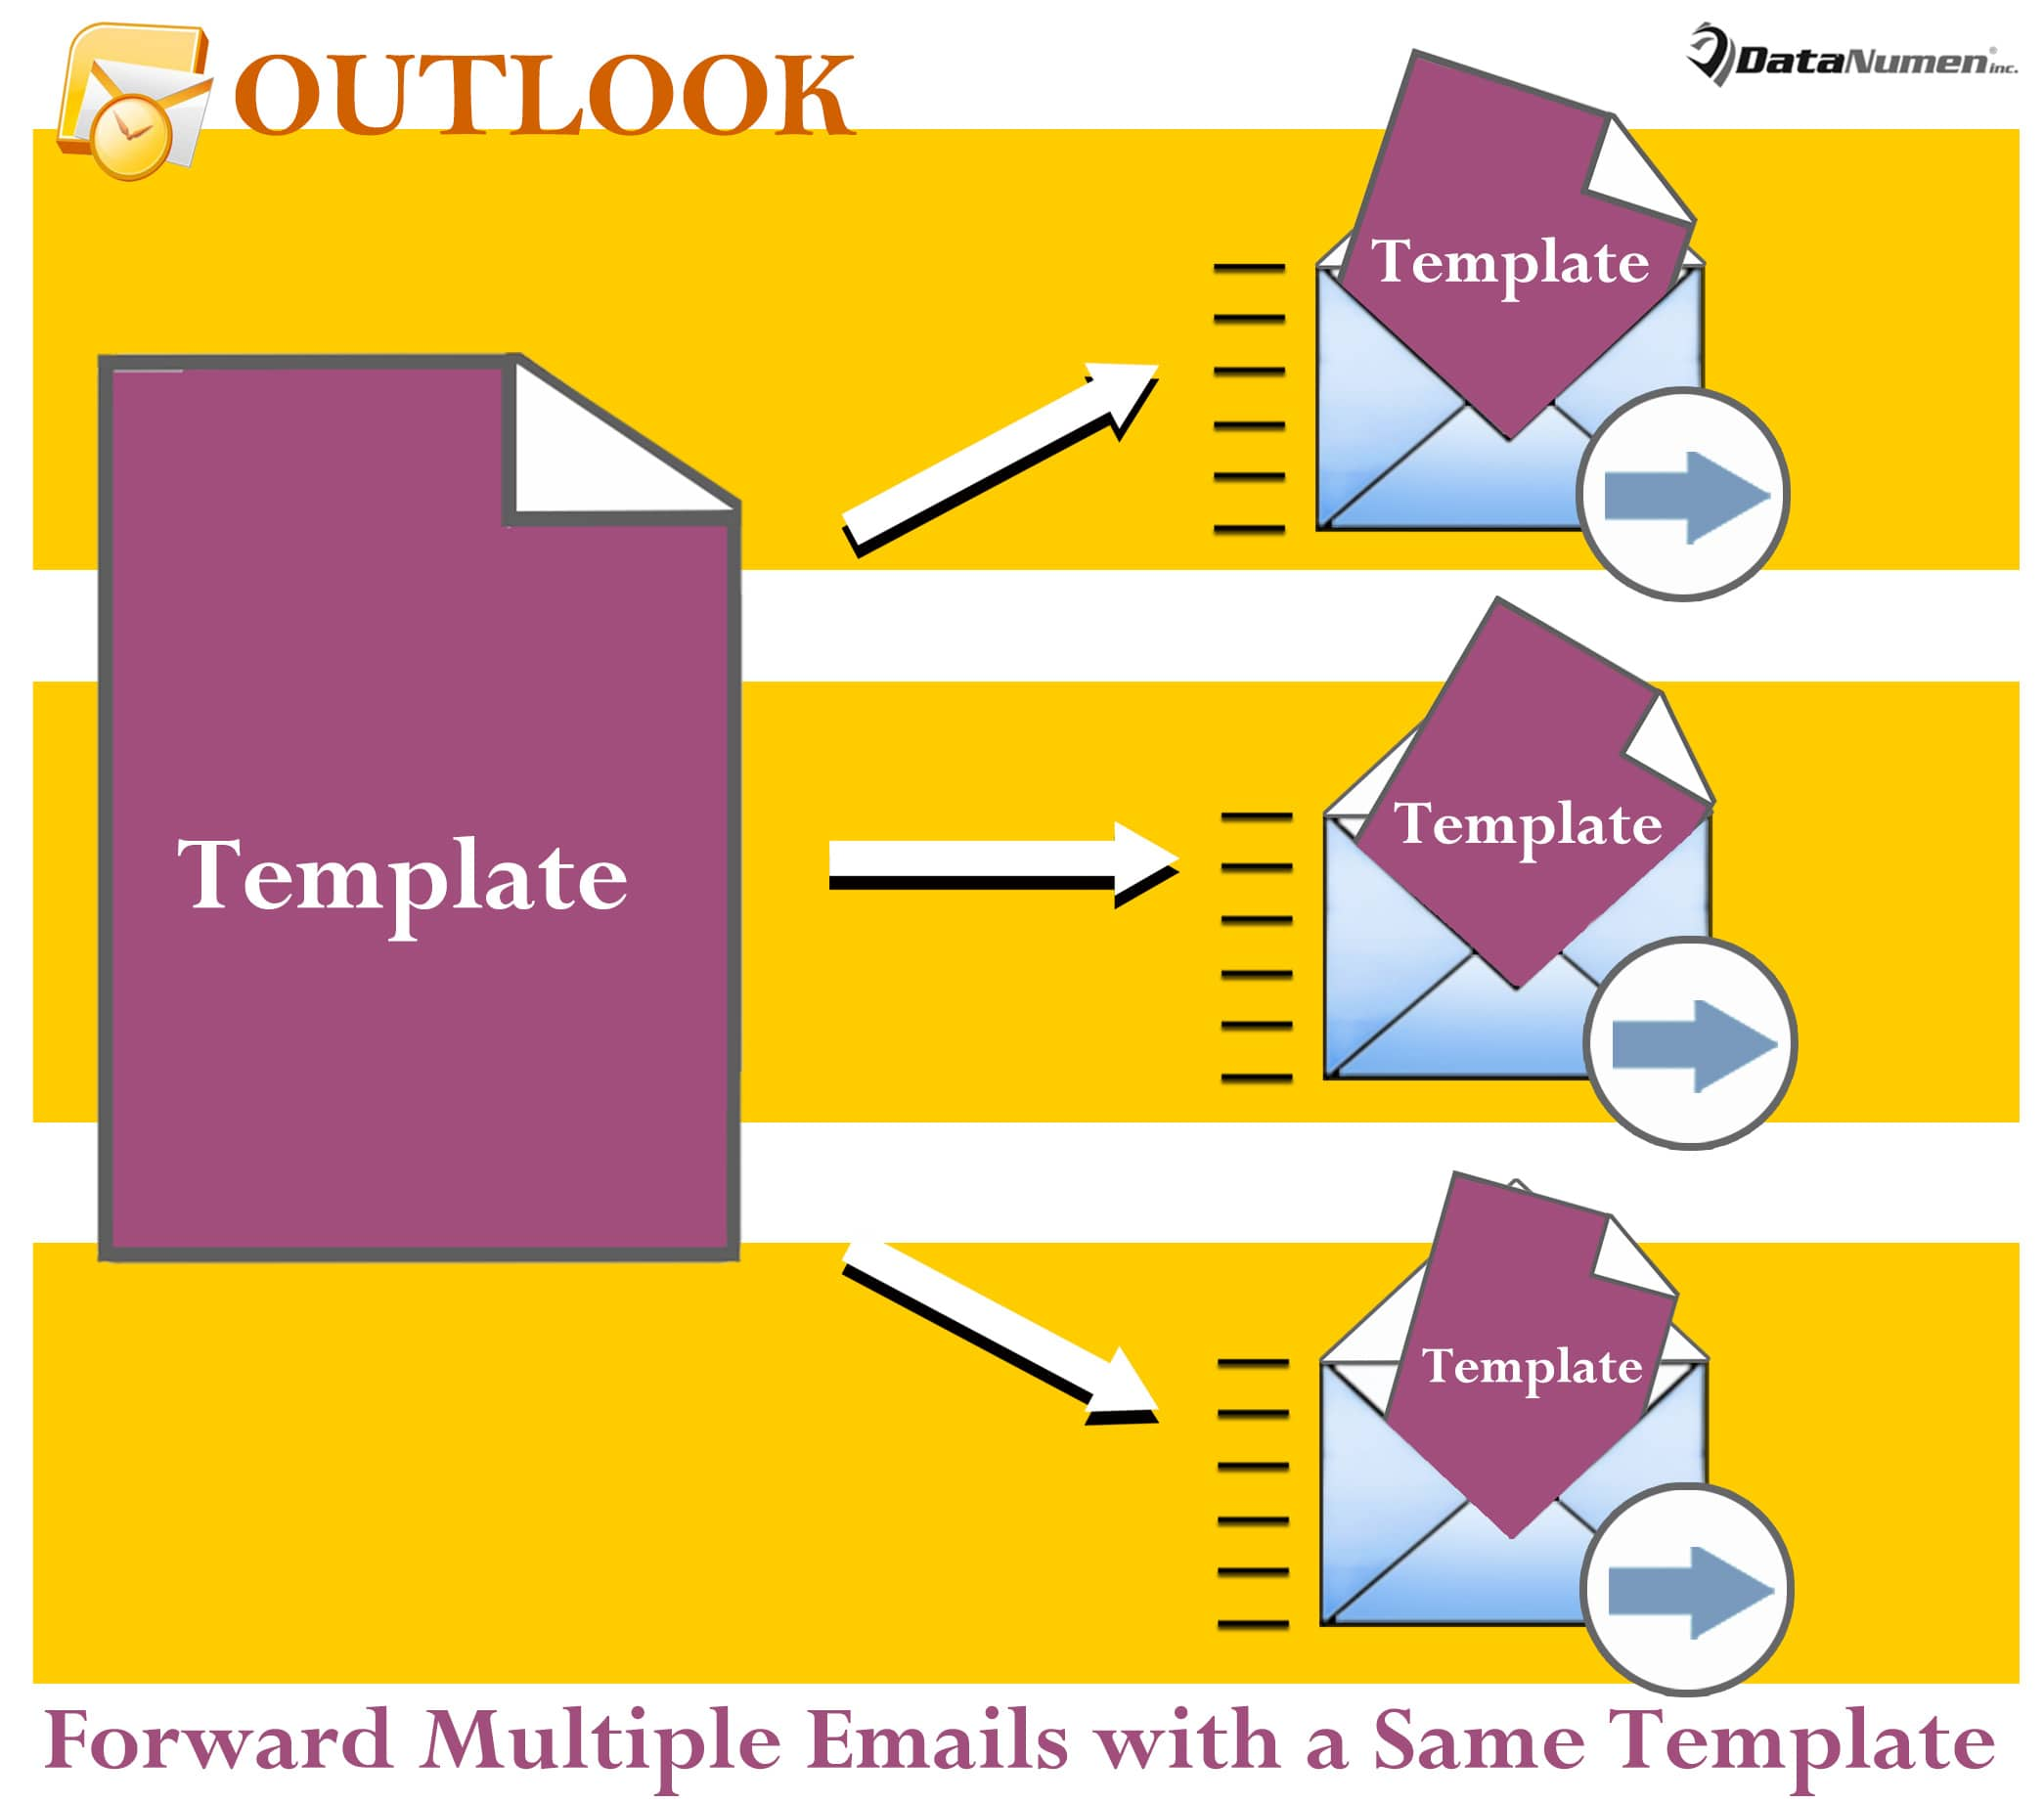 Forward Multiple Outlook Emails with a Same Template